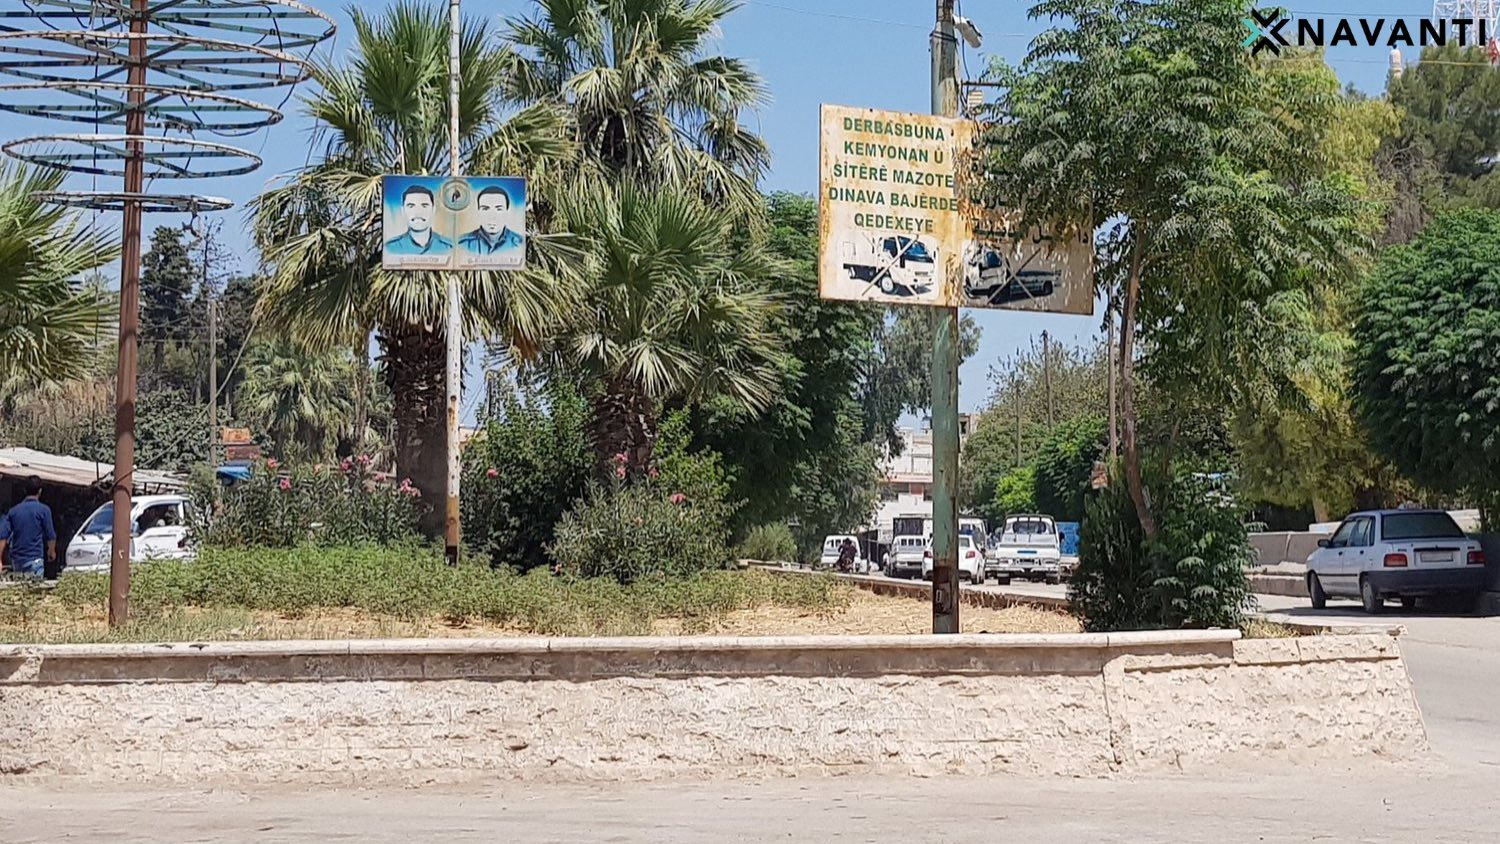 A sign forbidding trucks from entering Ras al-Ayn is juxtaposed with a sign commemorating fallen SDF soldiers. Source: Navanti